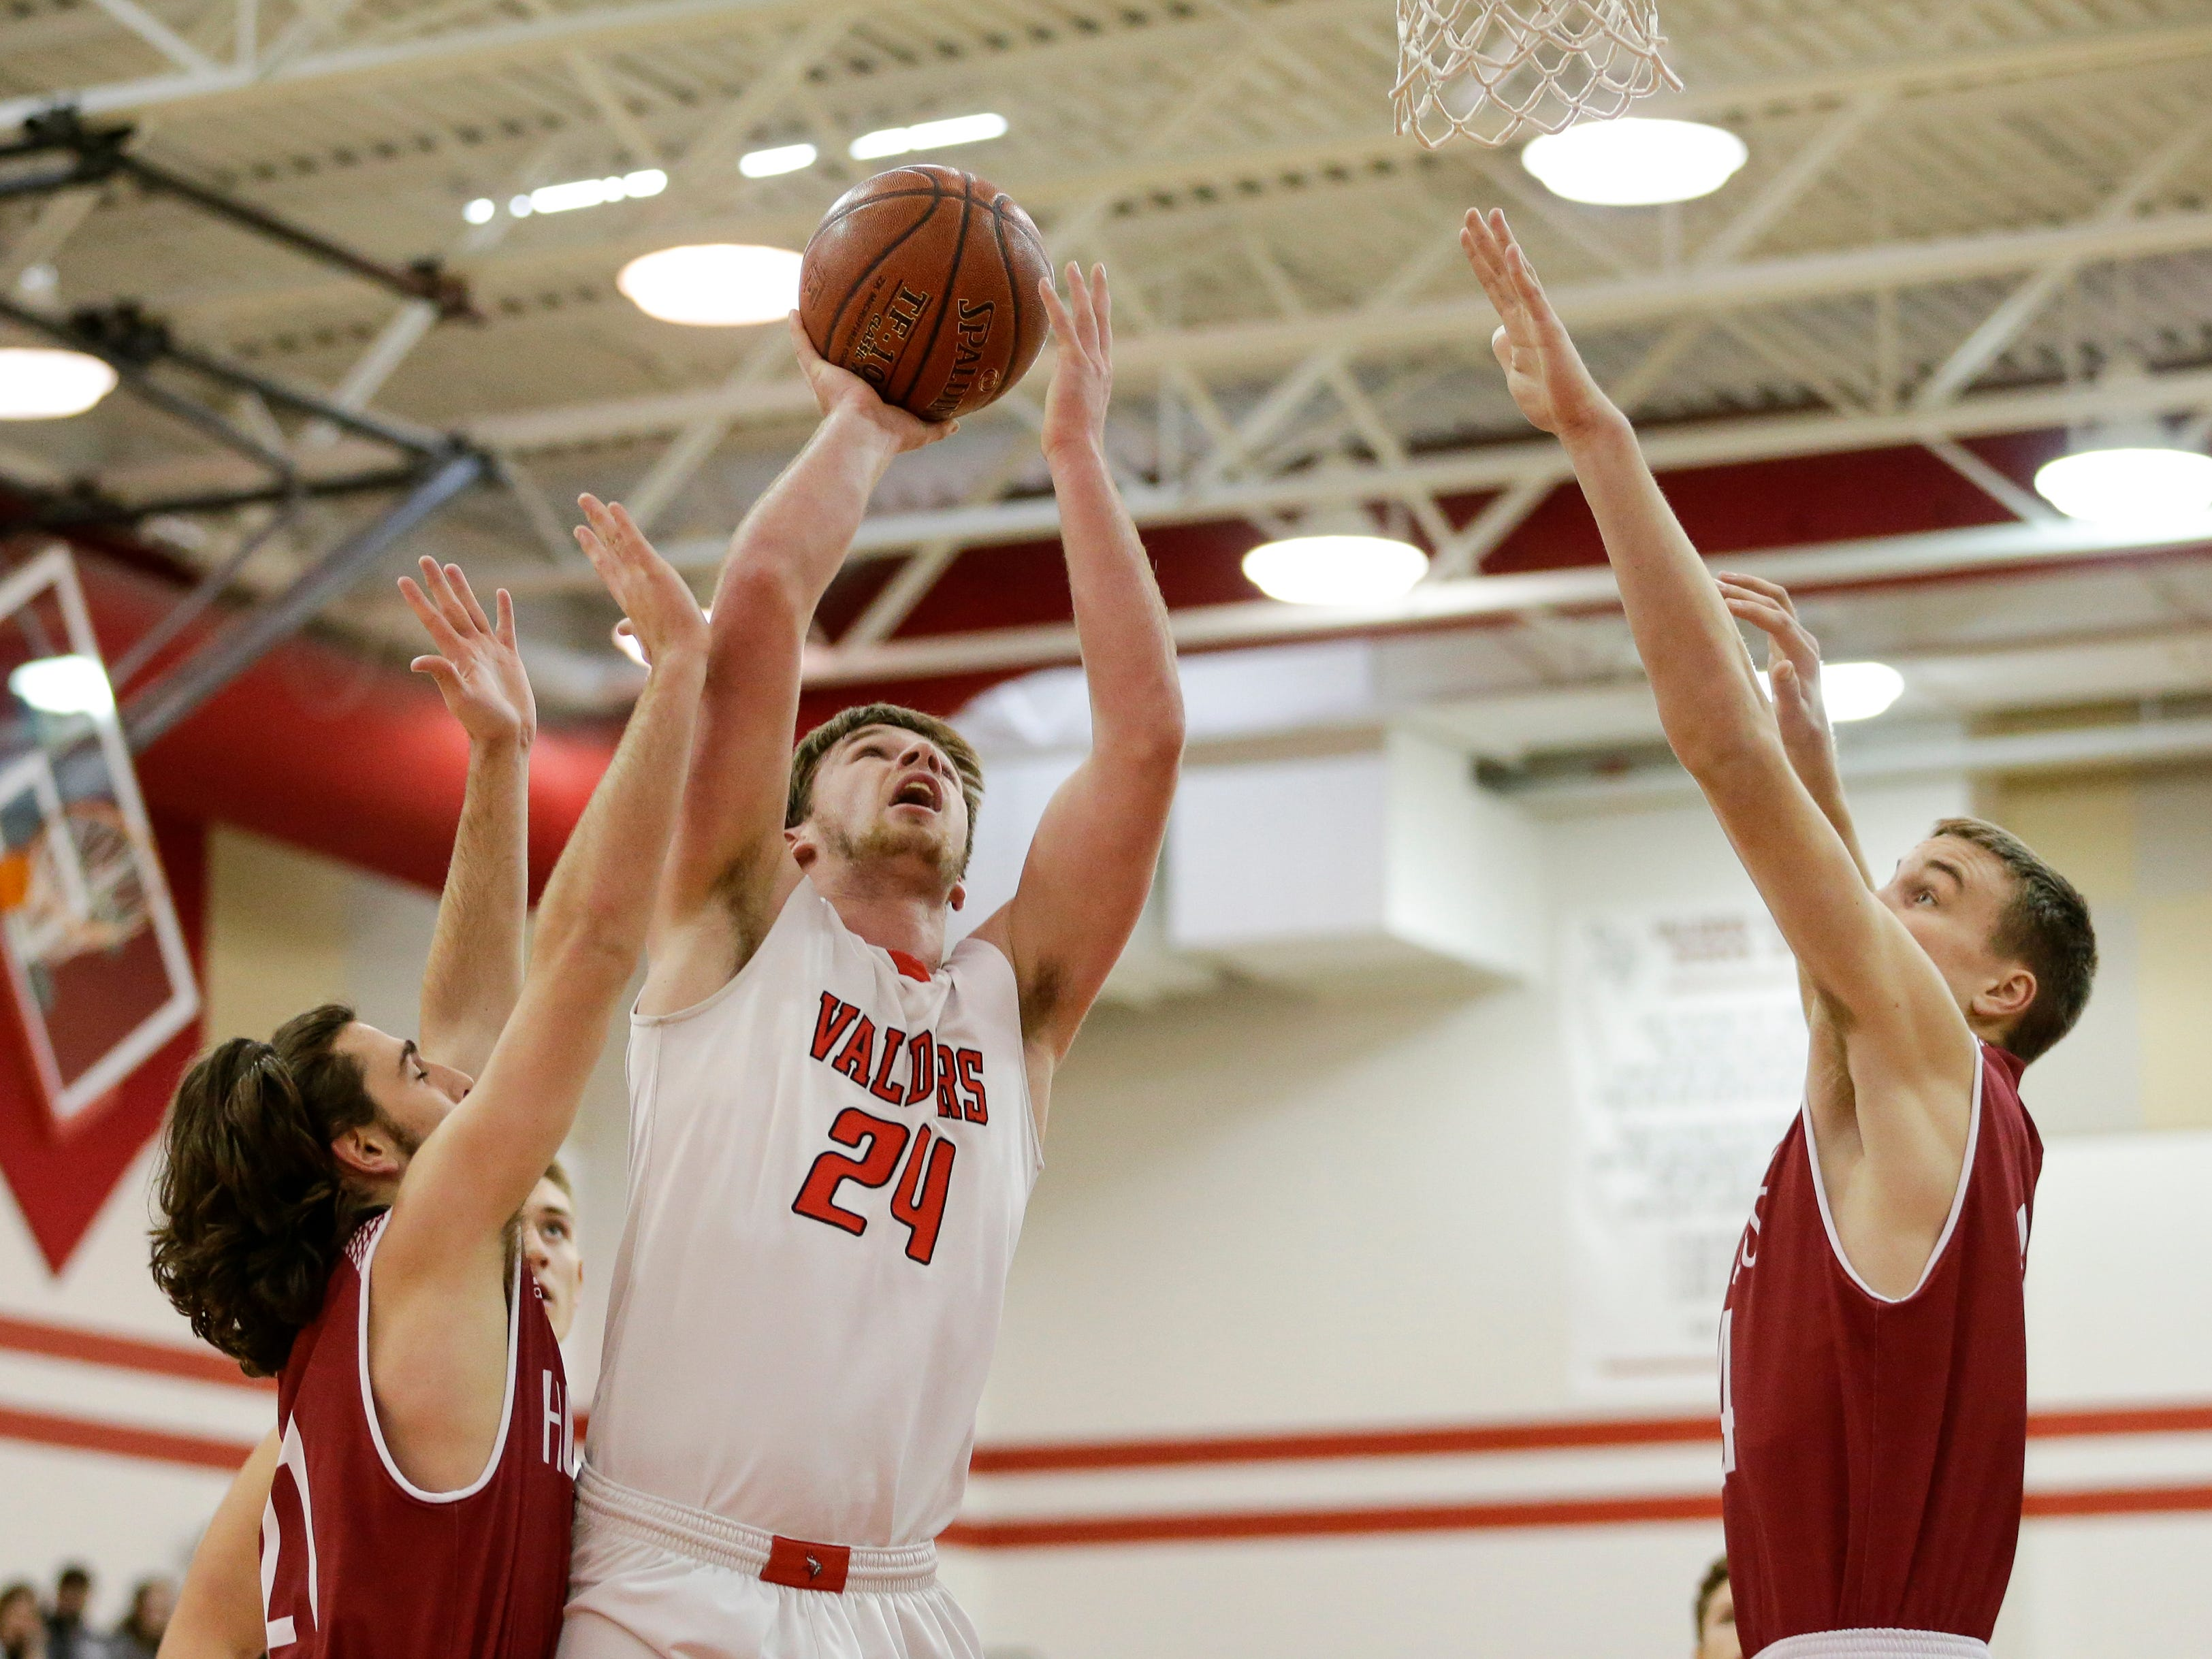 Valders' Fletcher Dallas shoots over New Holstein during an EWC matchup at Valders High School Tuesday, January 15, 2019, in Valders, Wis. Joshua Clark/USA TODAY NETWORK-Wisconsin